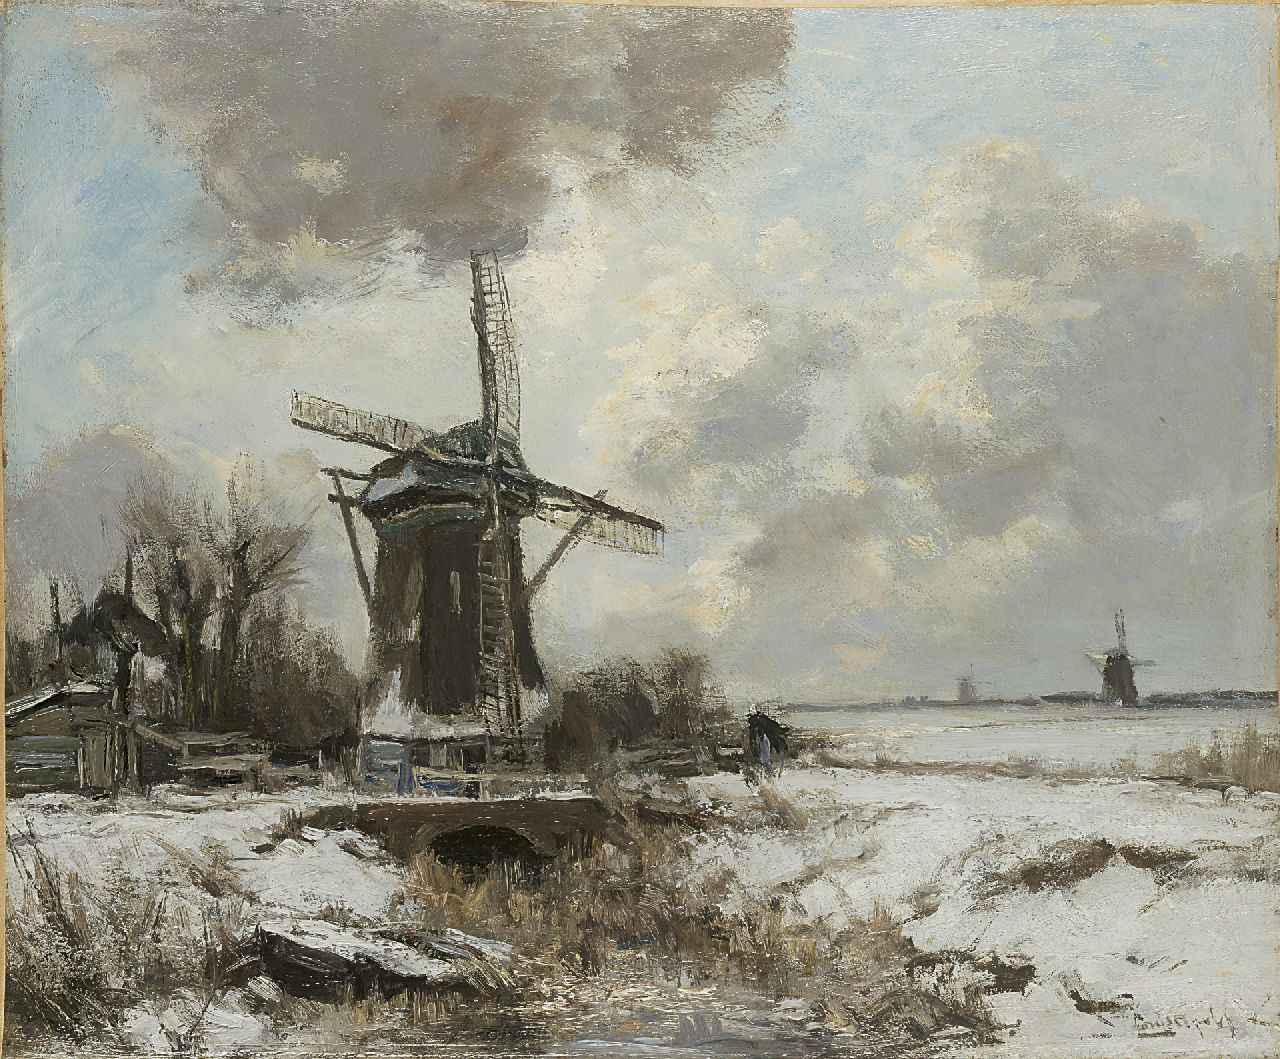 Apol L.F.H.  | Lodewijk Franciscus Hendrik 'Louis' Apol, A winter landscape with a windmill, oil on canvas 50.0 x 60.3 cm, signed l.r.